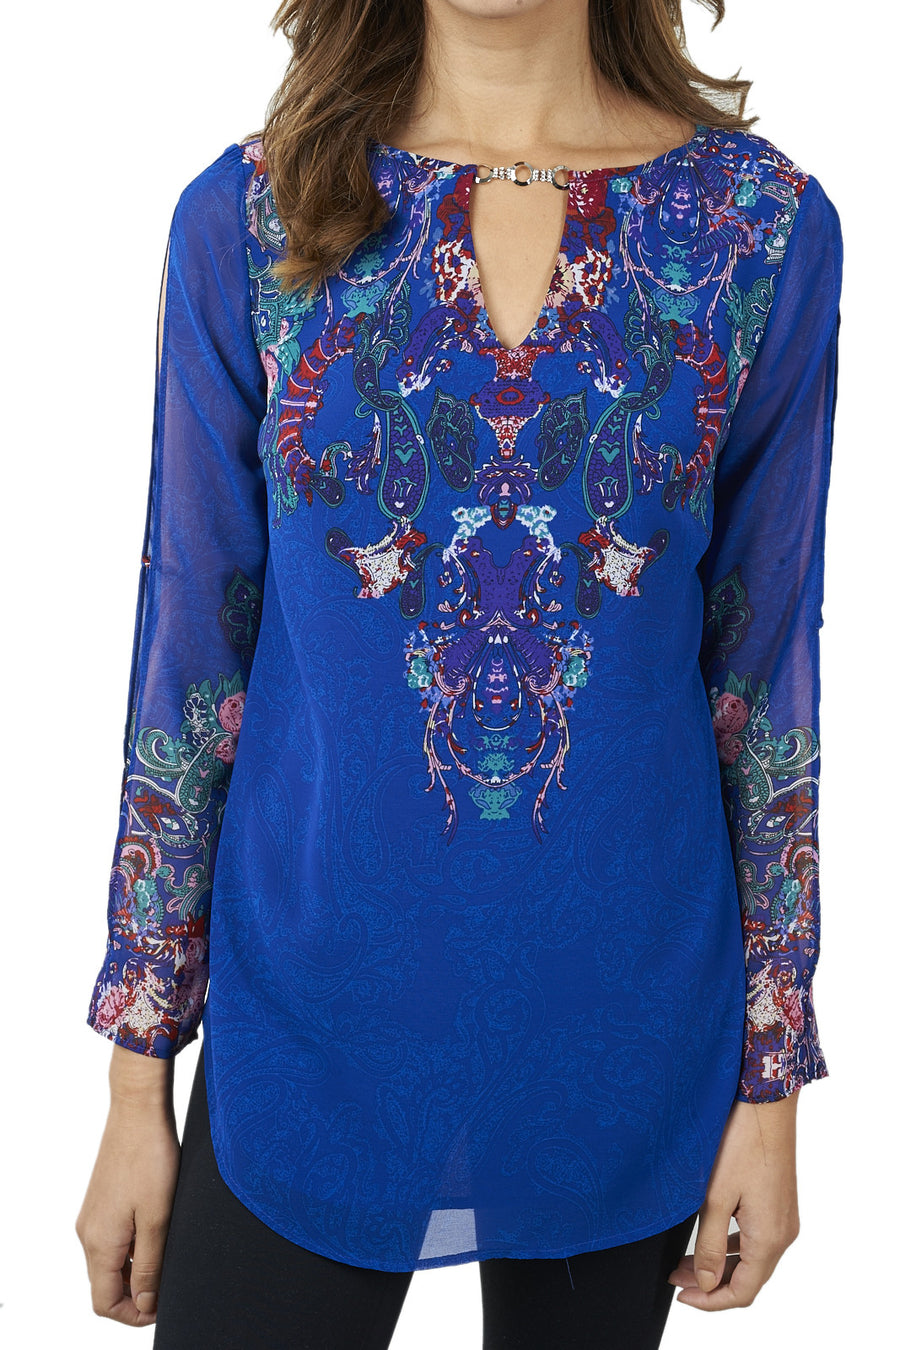 Royal Blue Paisley Print Top